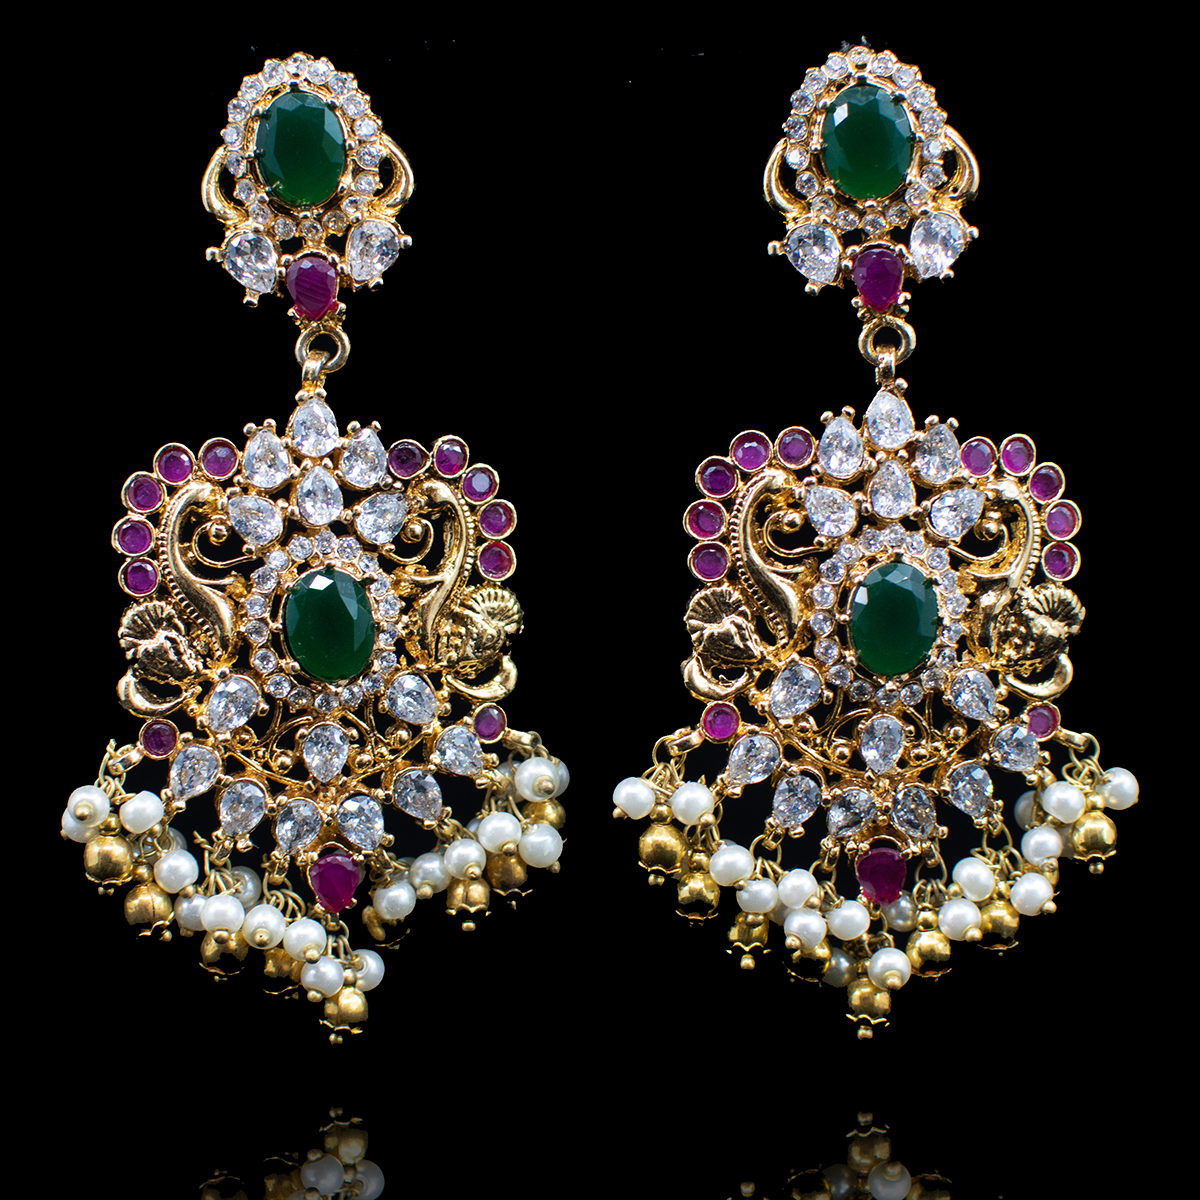 Lamisah Earrings